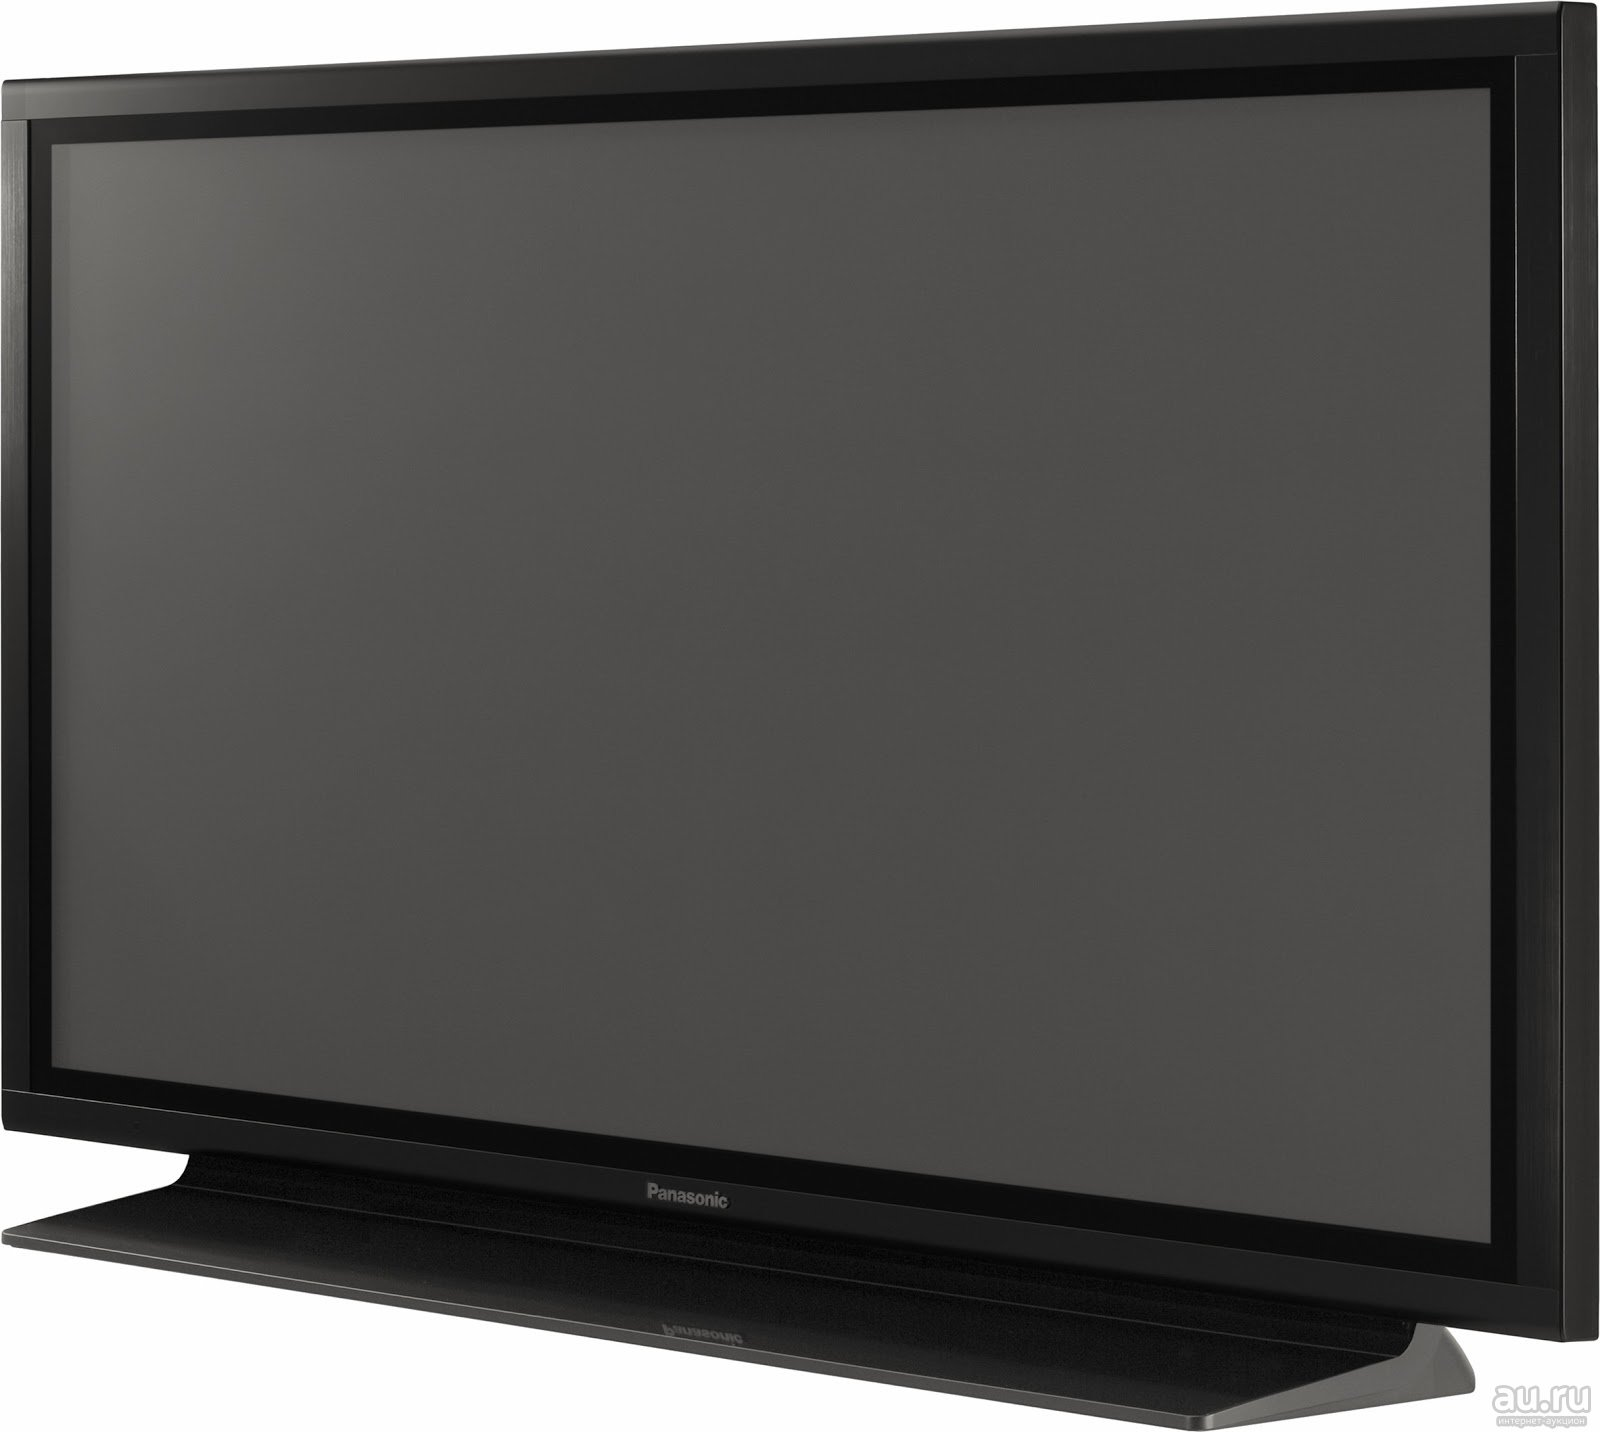 Panasonic 152″ Plasma TV